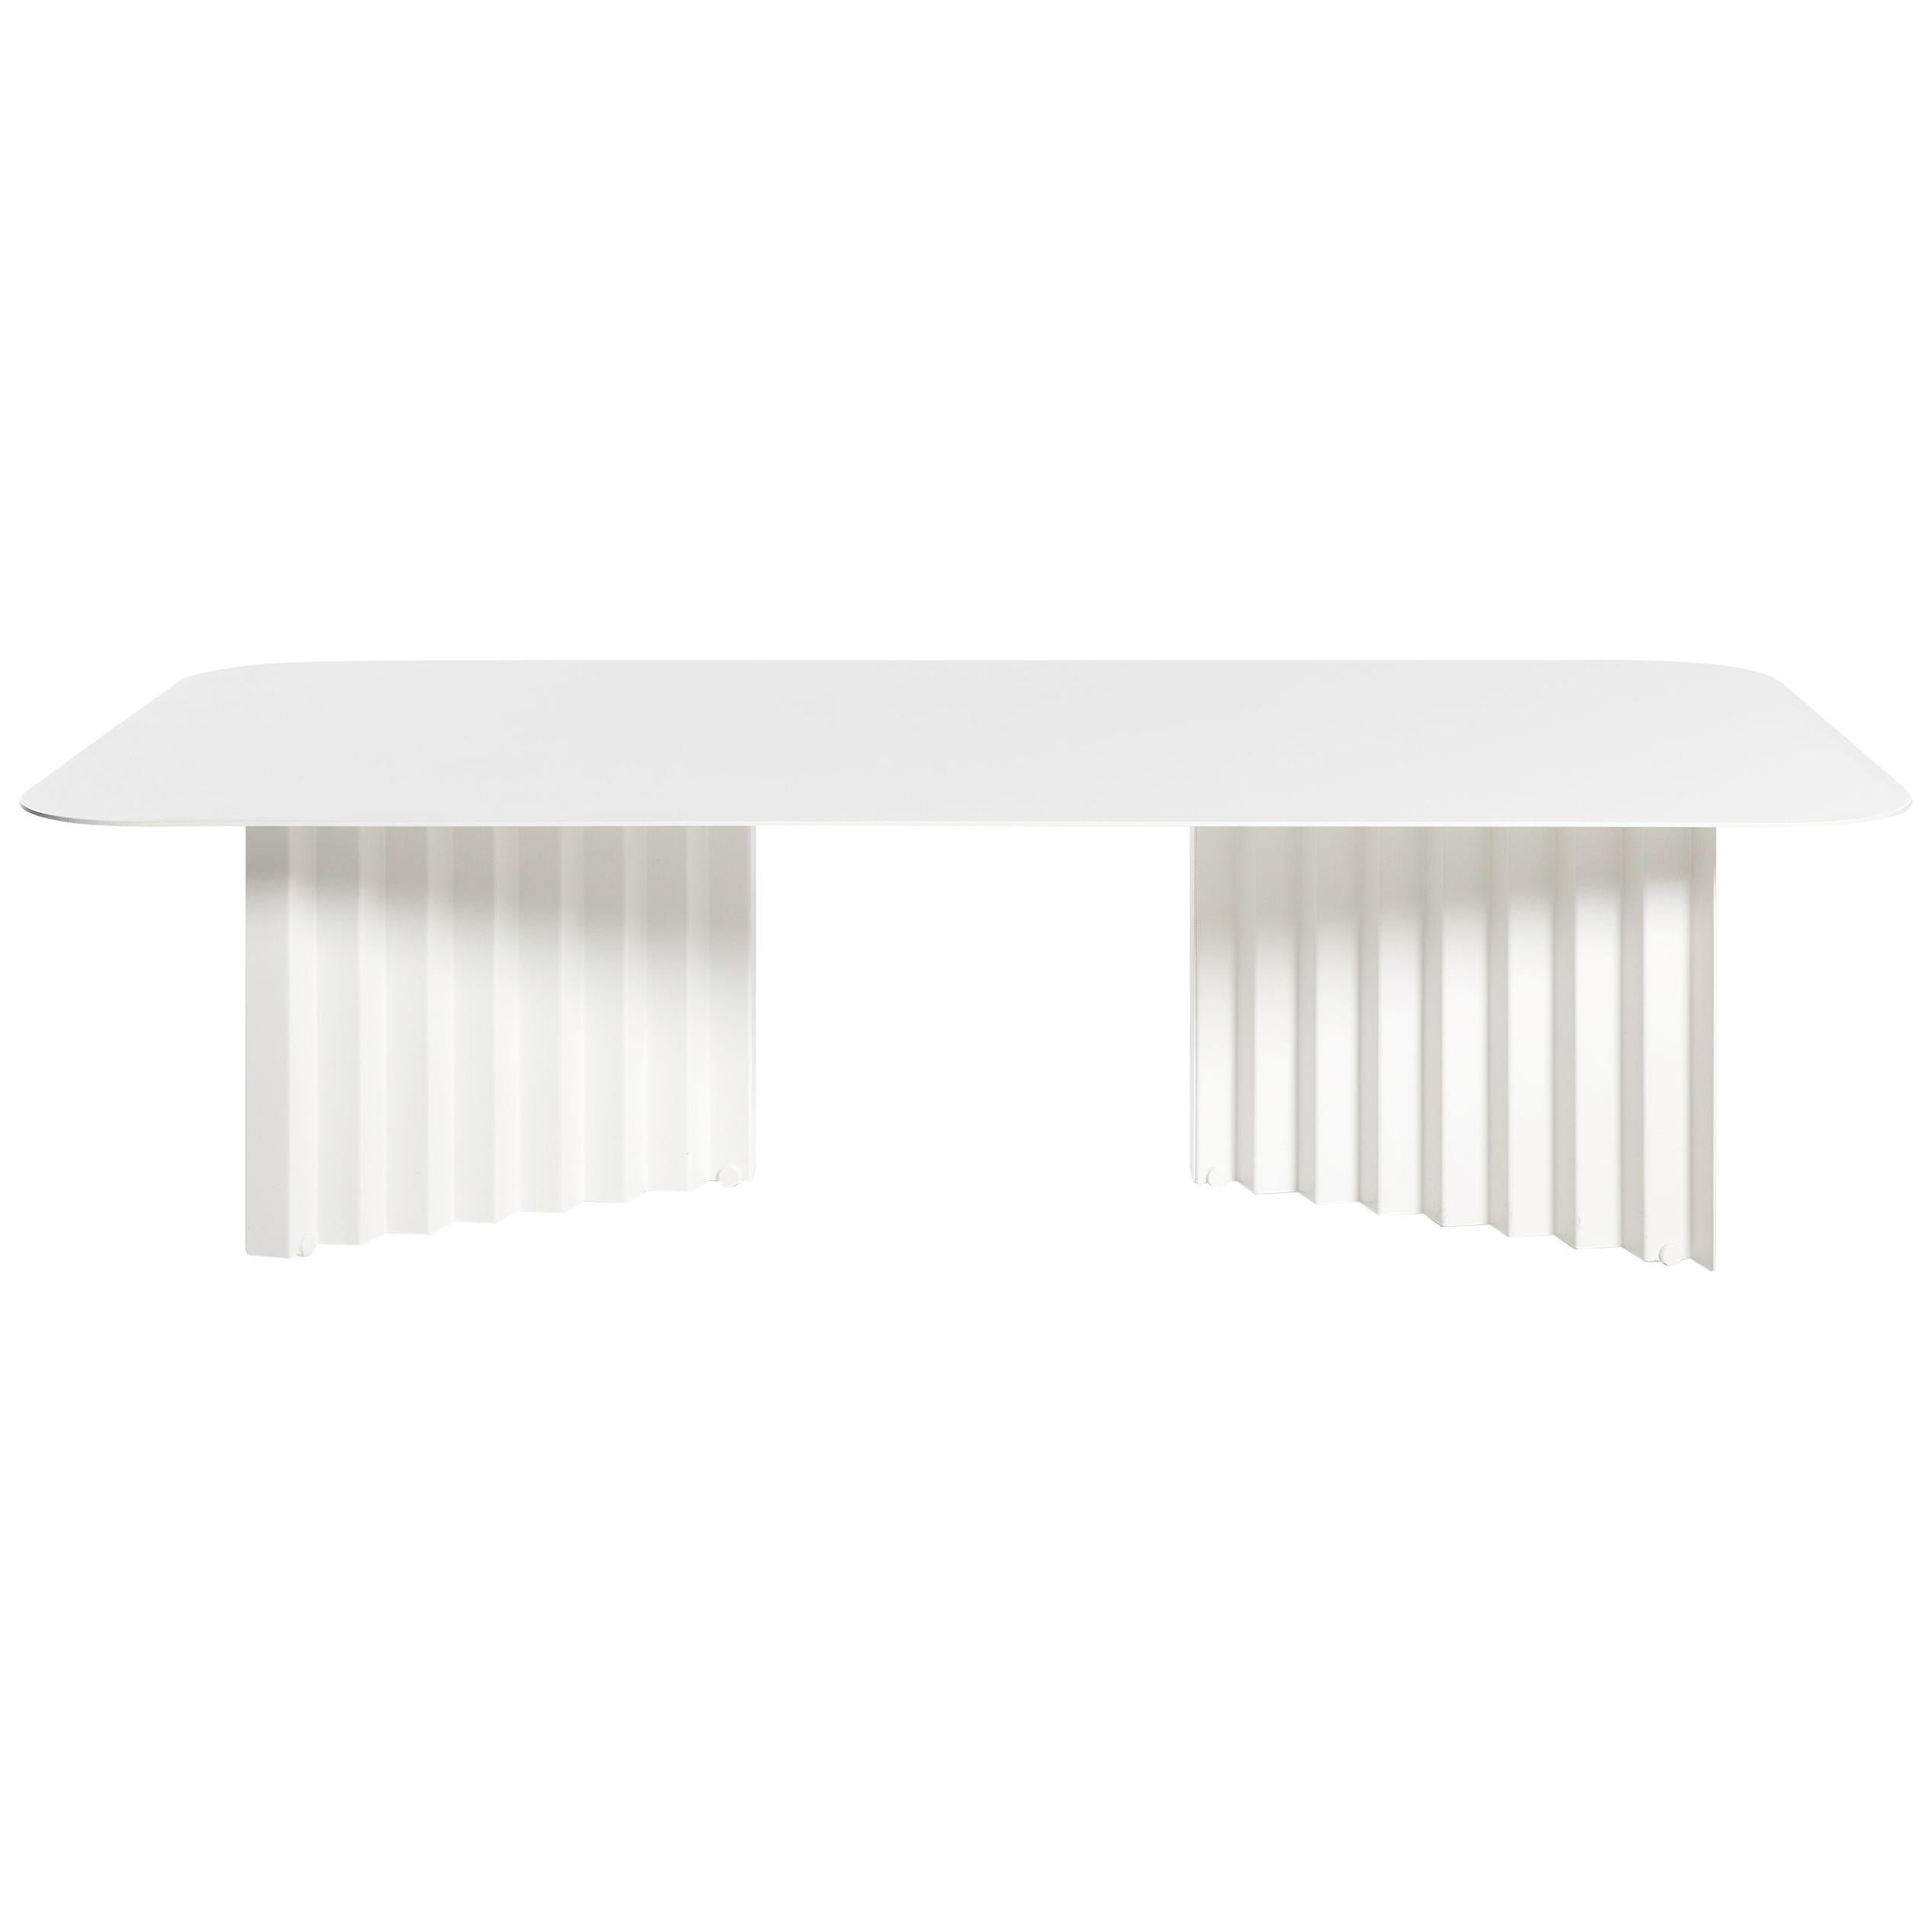 RS Barcelona Plec Large Table in White Metal by A.P.O.